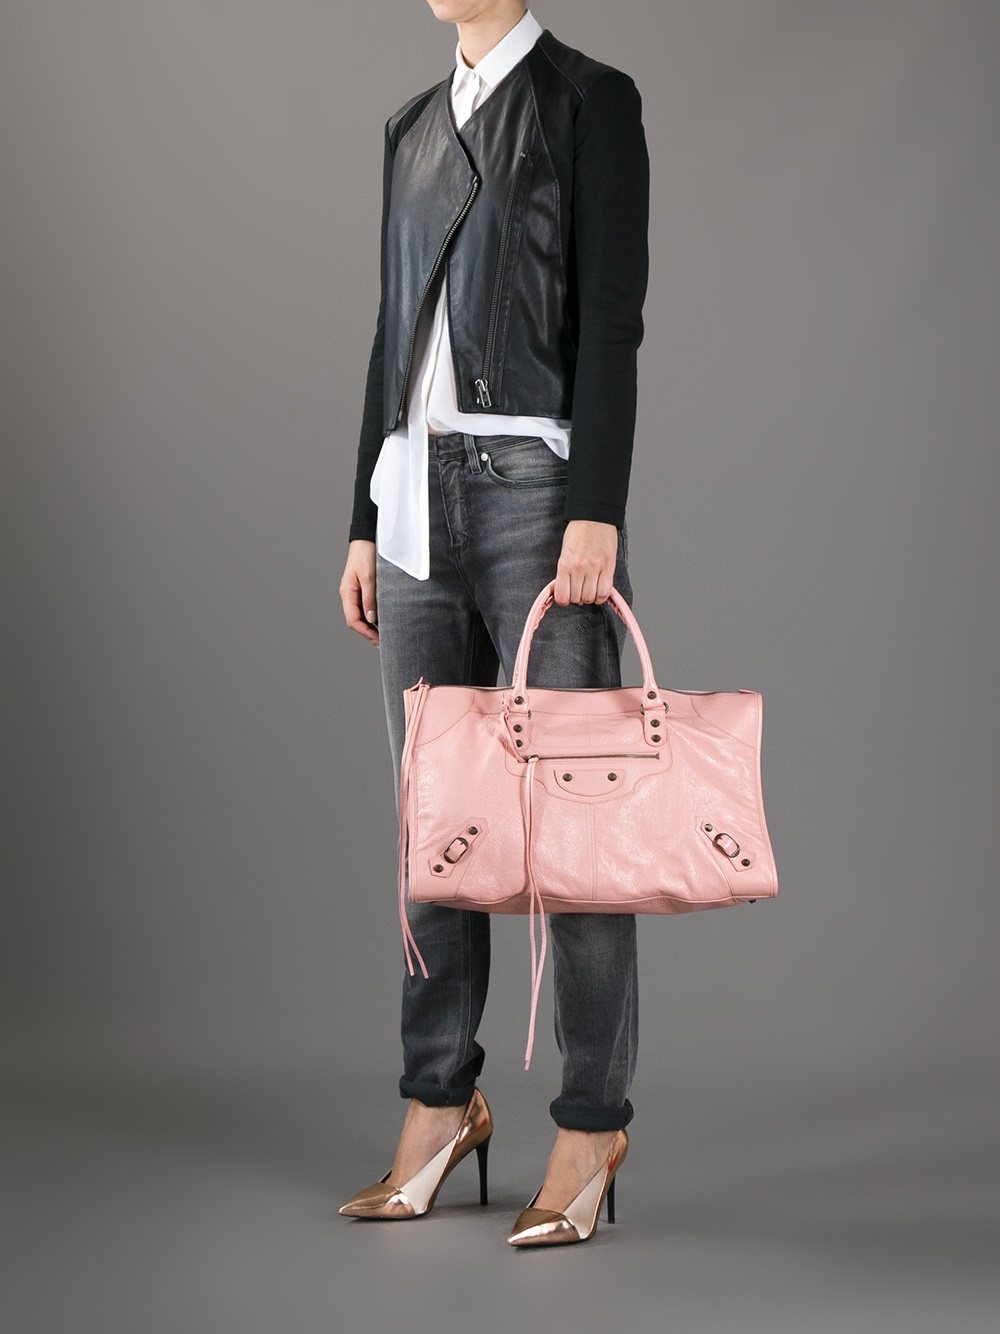 Balenciaga Classic Work Tote in Pink | Lyst